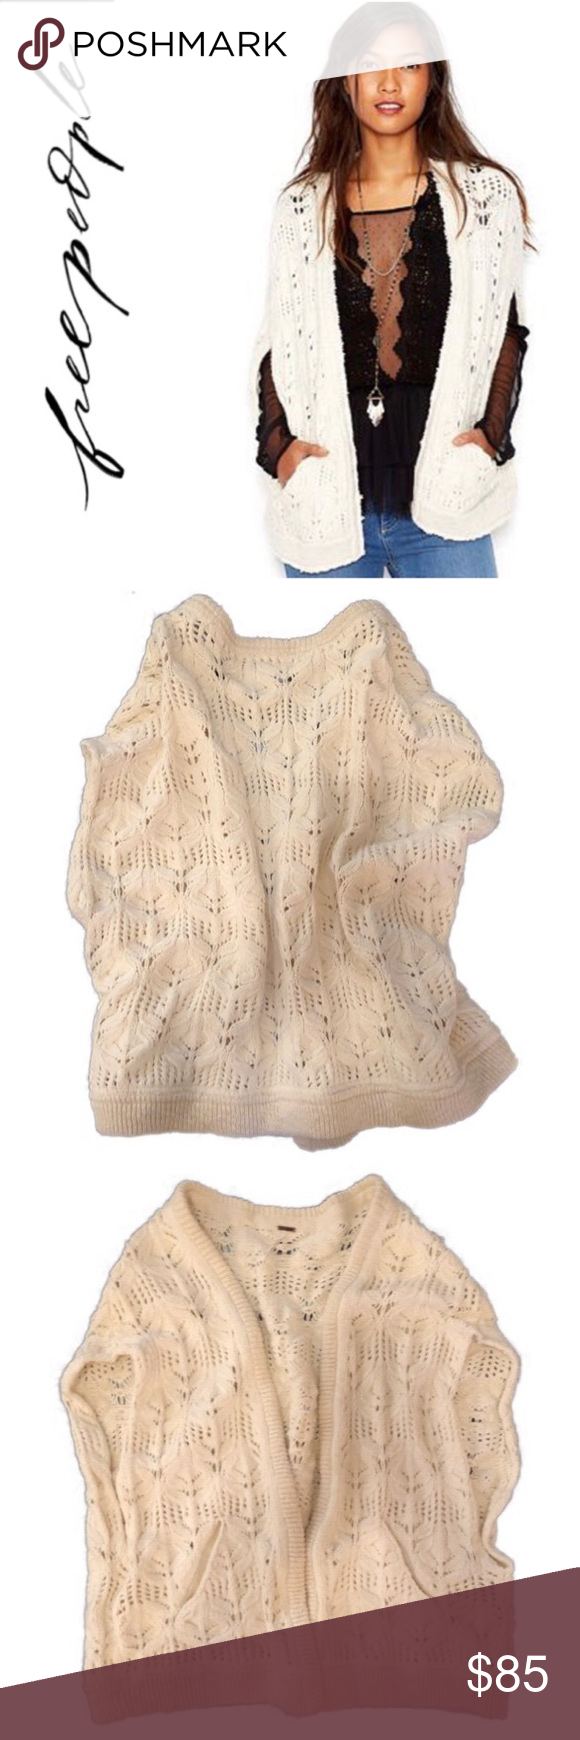 Free People Cream Chunky Cable Knit Sweater Vest Free People Cream Chunky Cable Knit Sweater Vest Is In Excell Chunky Cable Knit Sweater Fashion Clothes Design